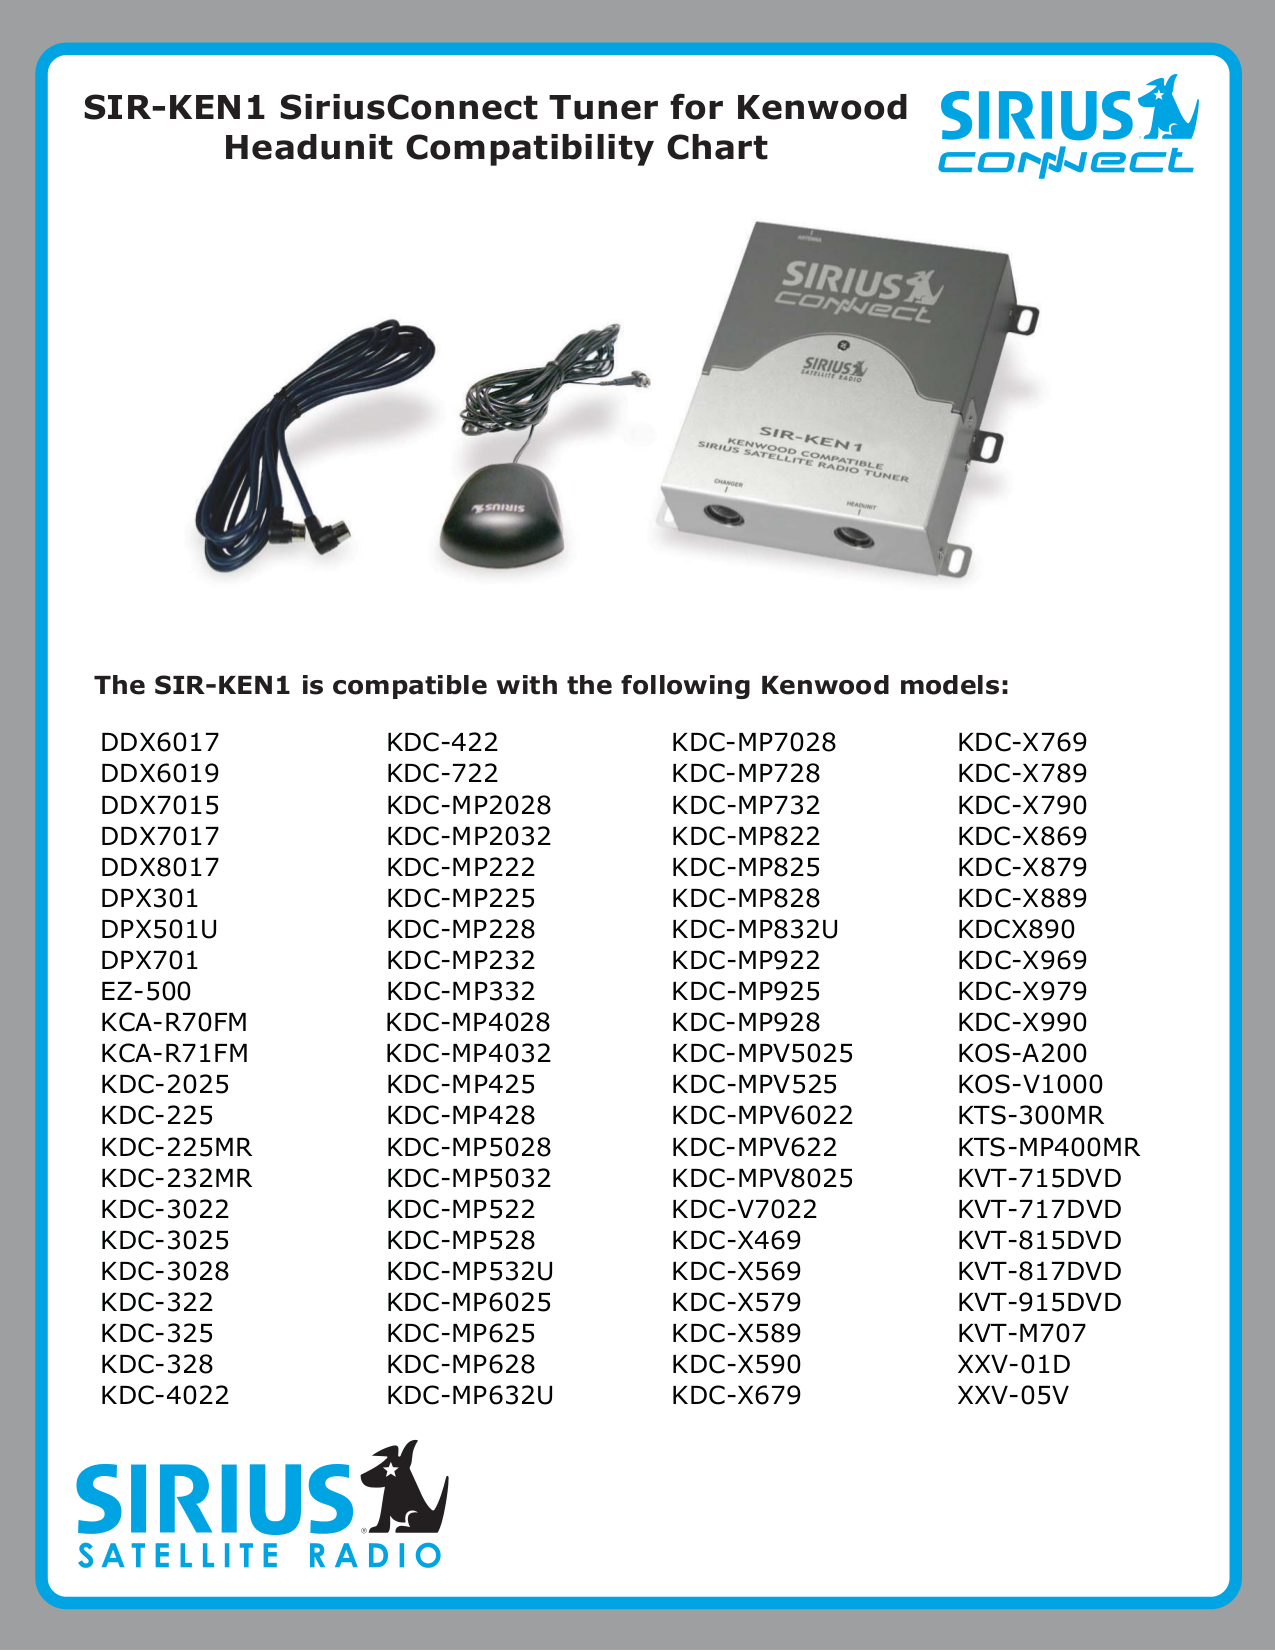 Kenwood Kdc Mp5028 Wiring Diagram Page 5 And Dnx571hd 422 Manual User Guide That Easy To Read U2022 Ddx